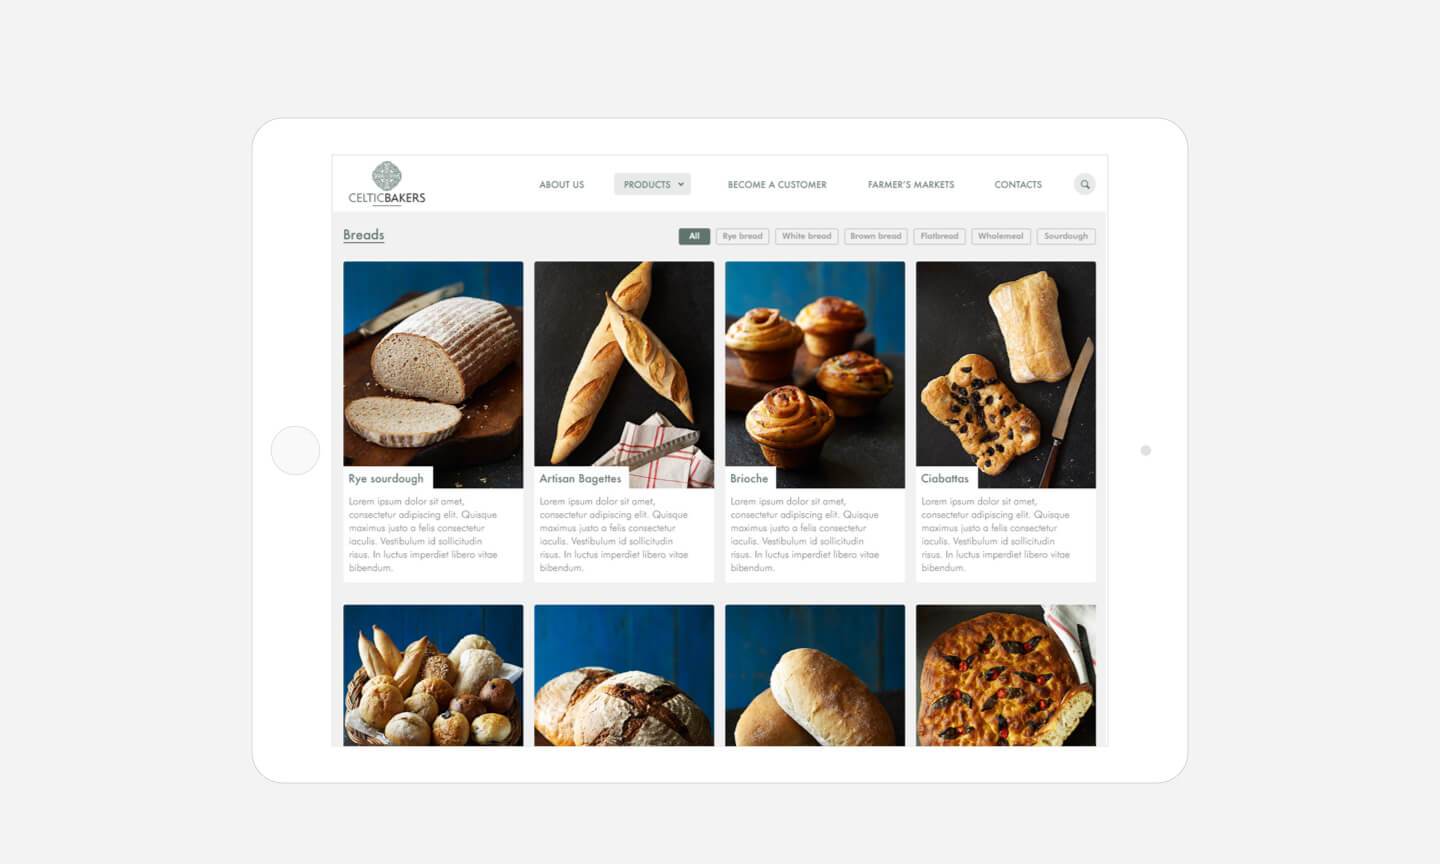 Celtic Bakers products